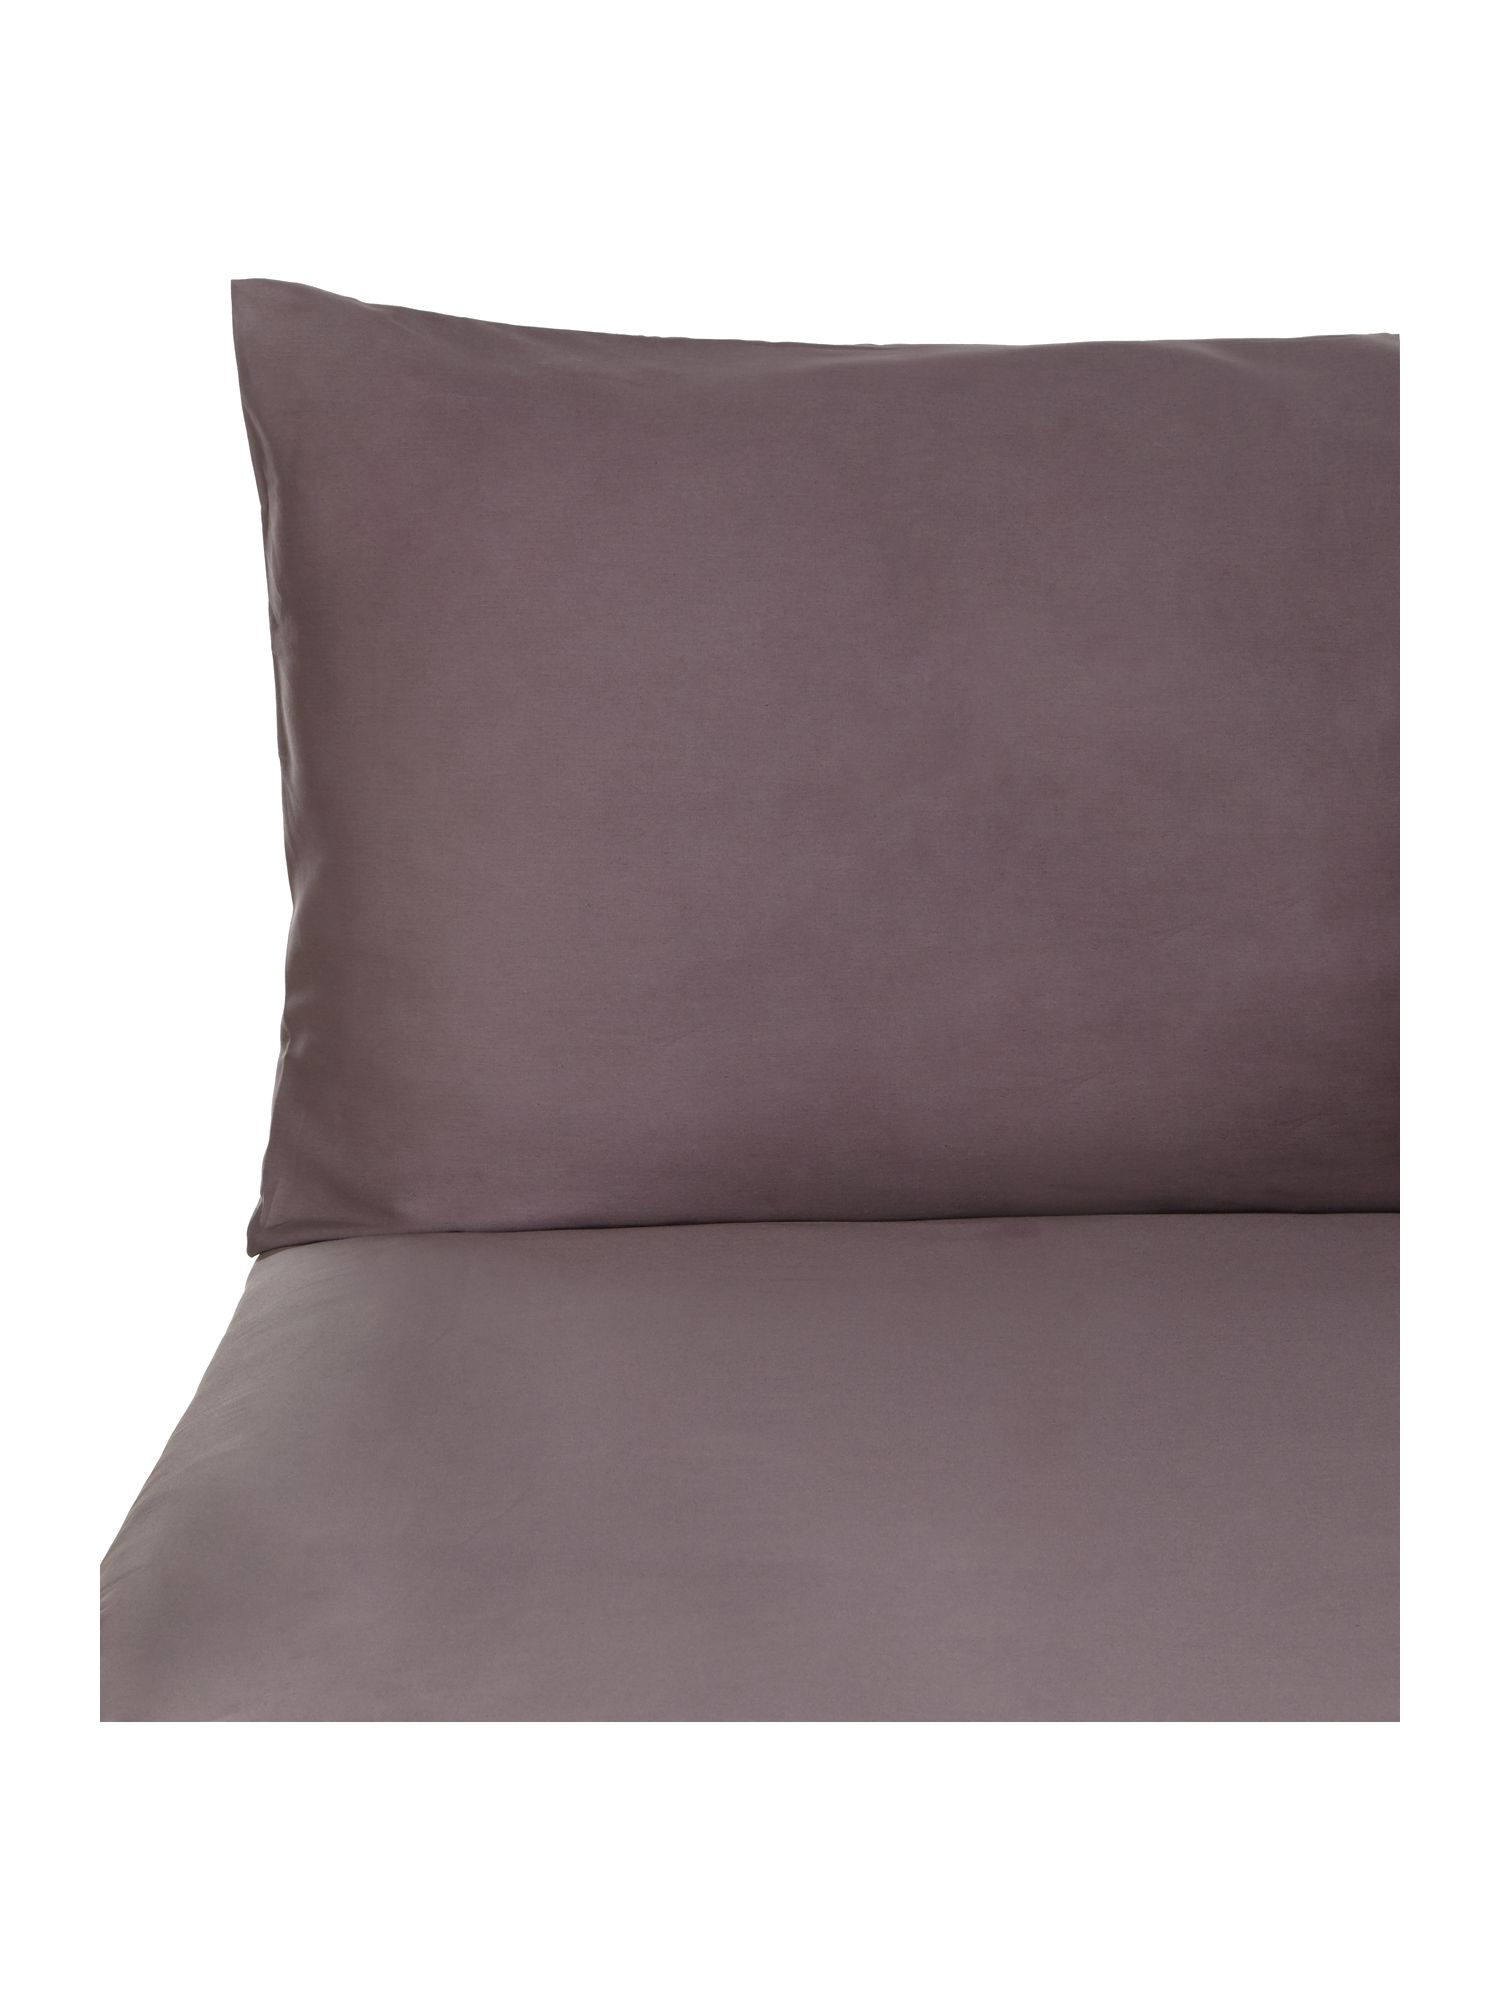 Graphite double fitted sheet